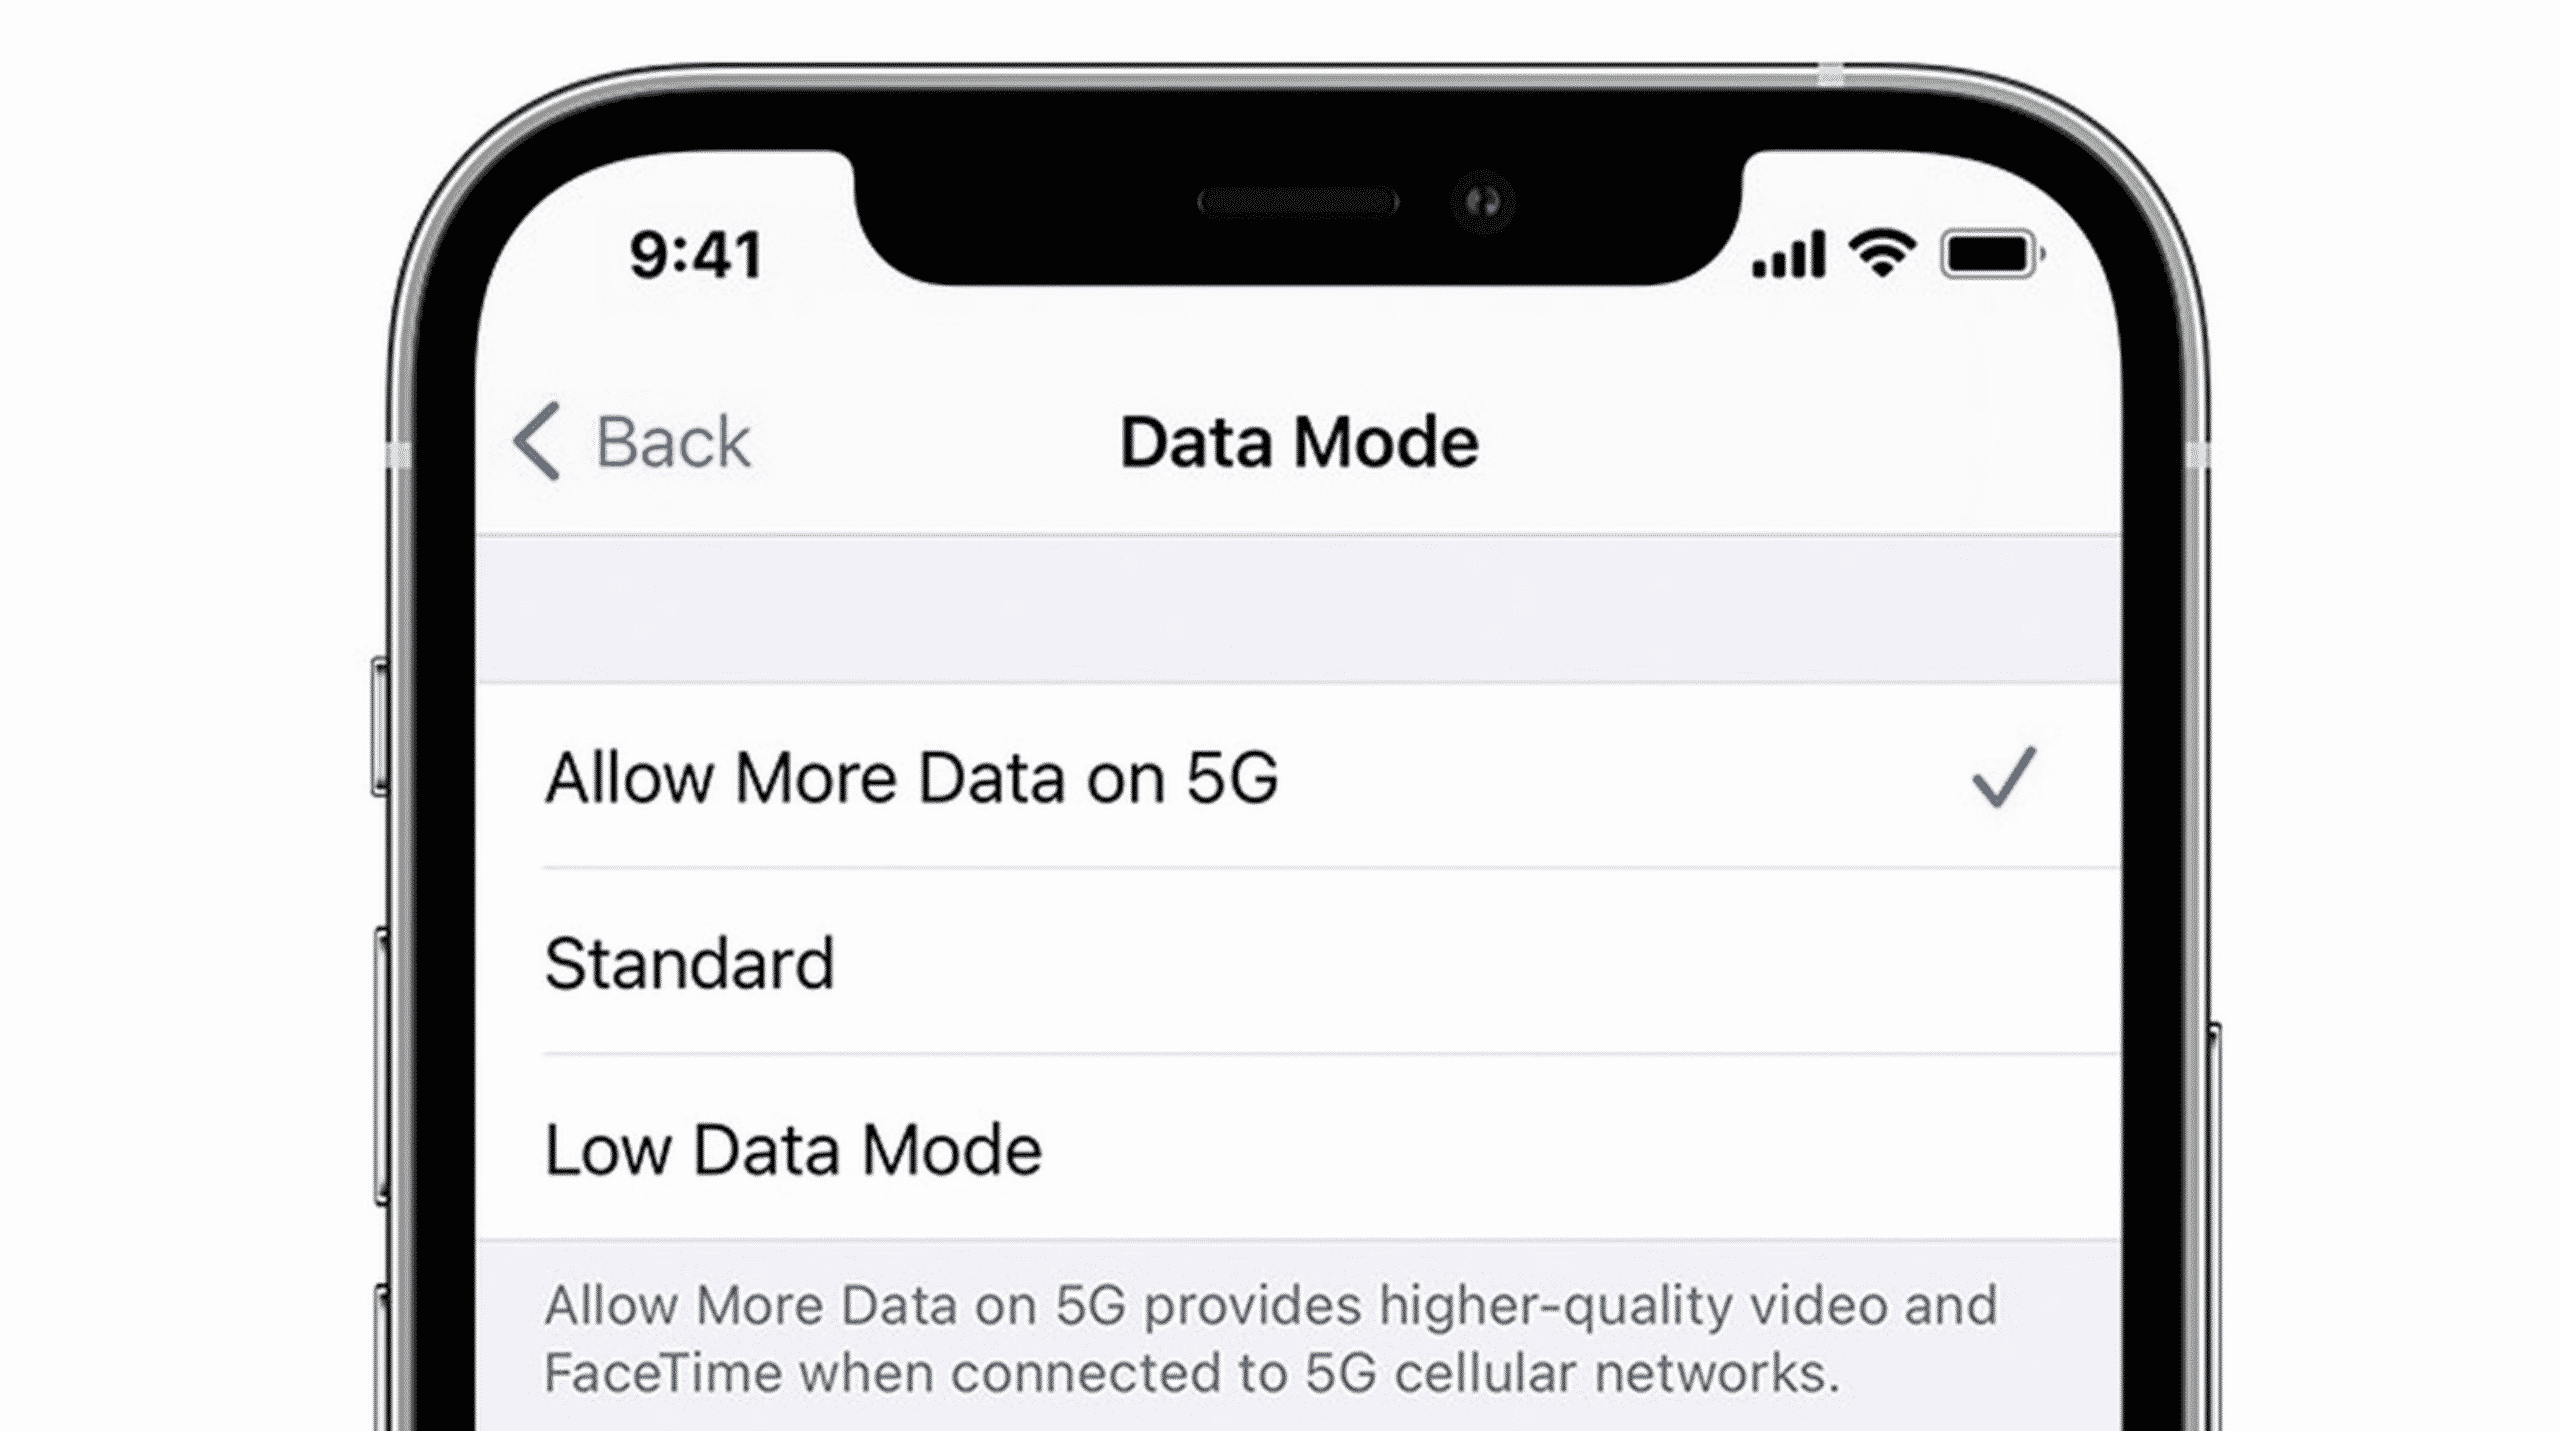 iPhone 12 iOS updates on 5G